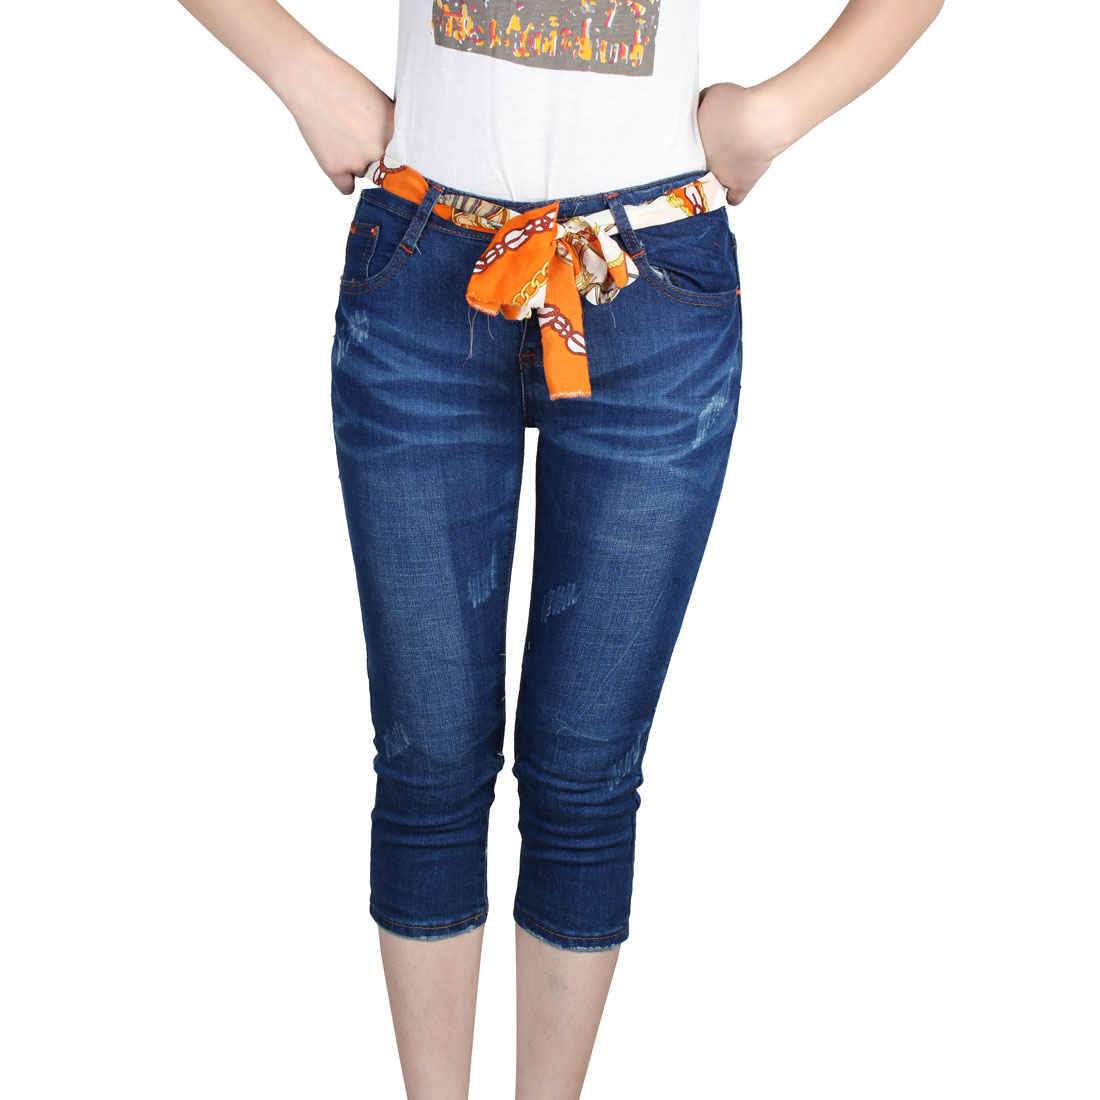 Woman Low Waist Butoon Closure Denim Cropped Jeans Pants Blue XS